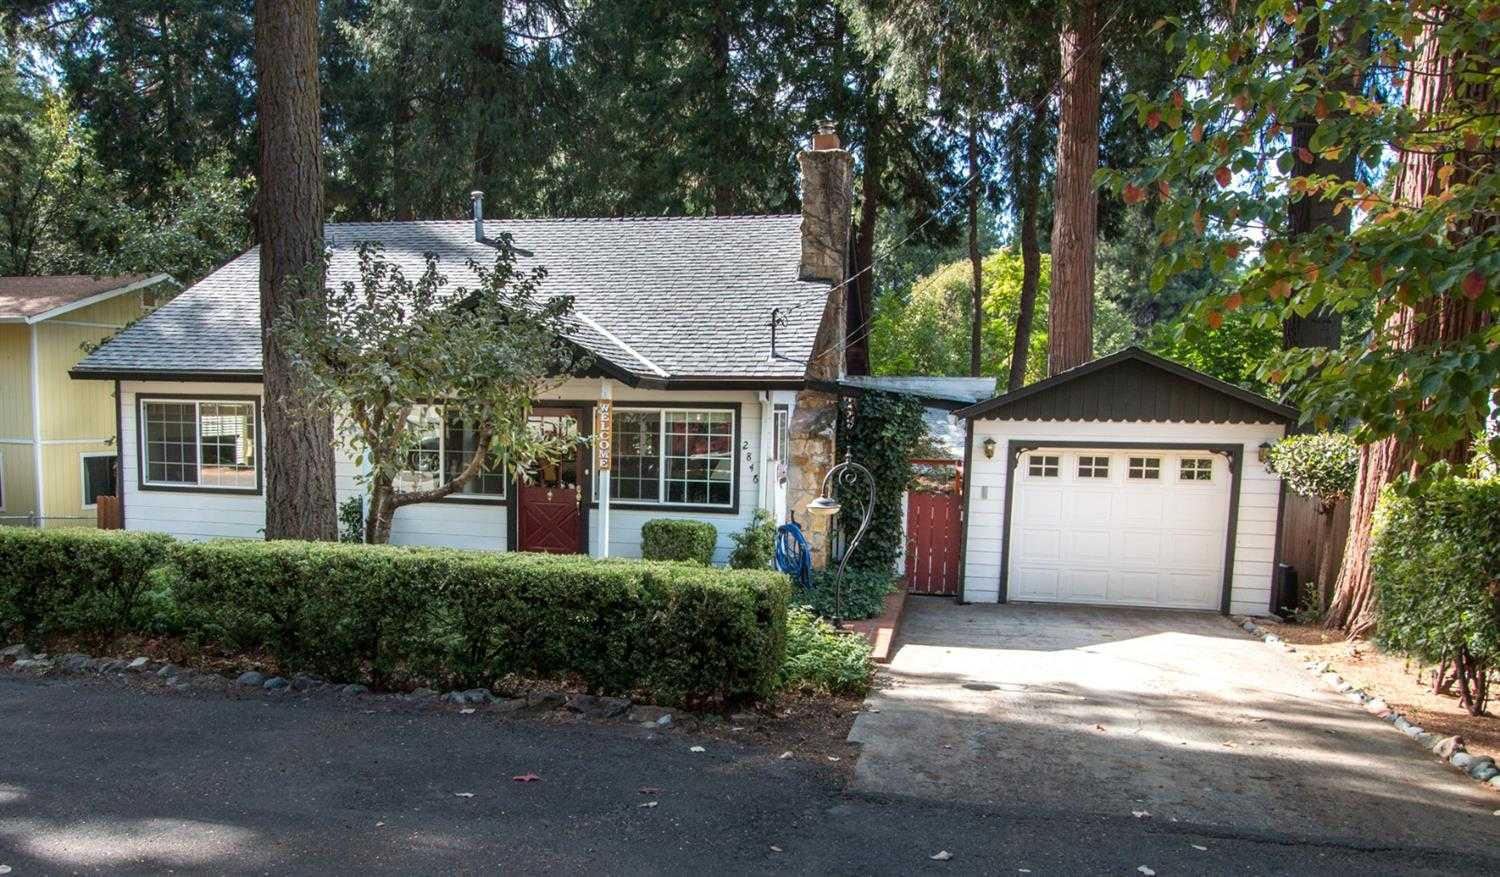 $300,000 - 3Br/3Ba -  for Sale in Pollock Pines